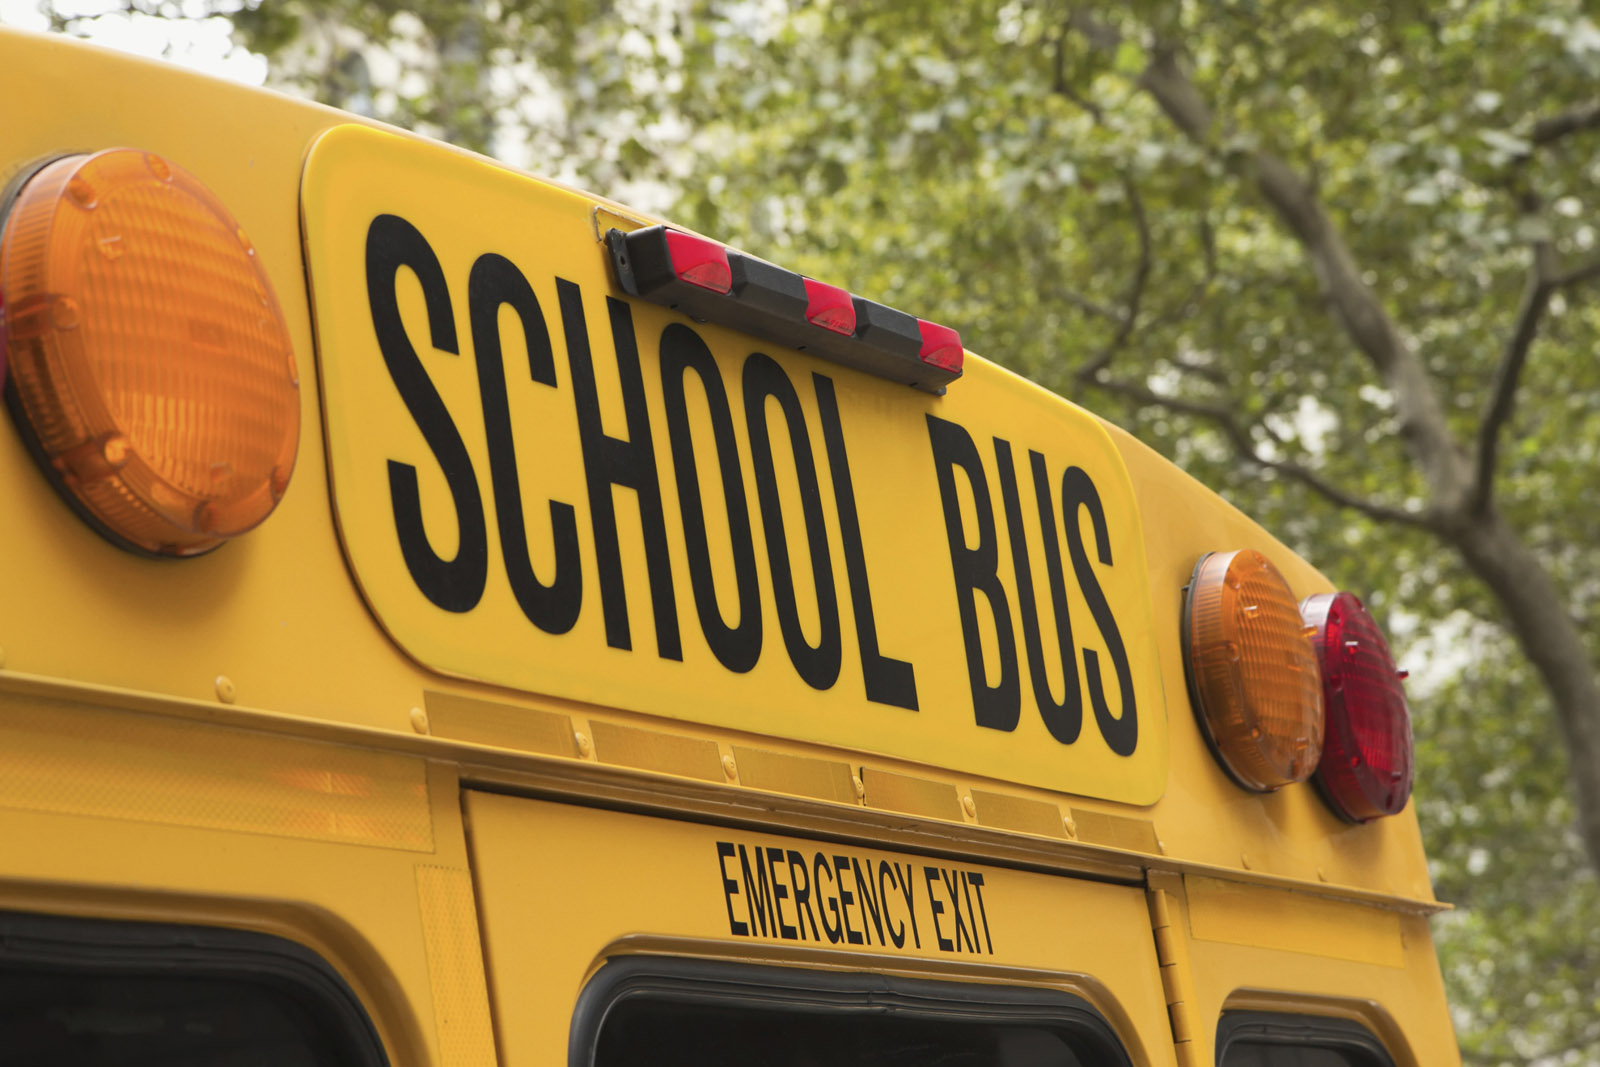 After bus issues, Prince George's schools order dismissal reviews